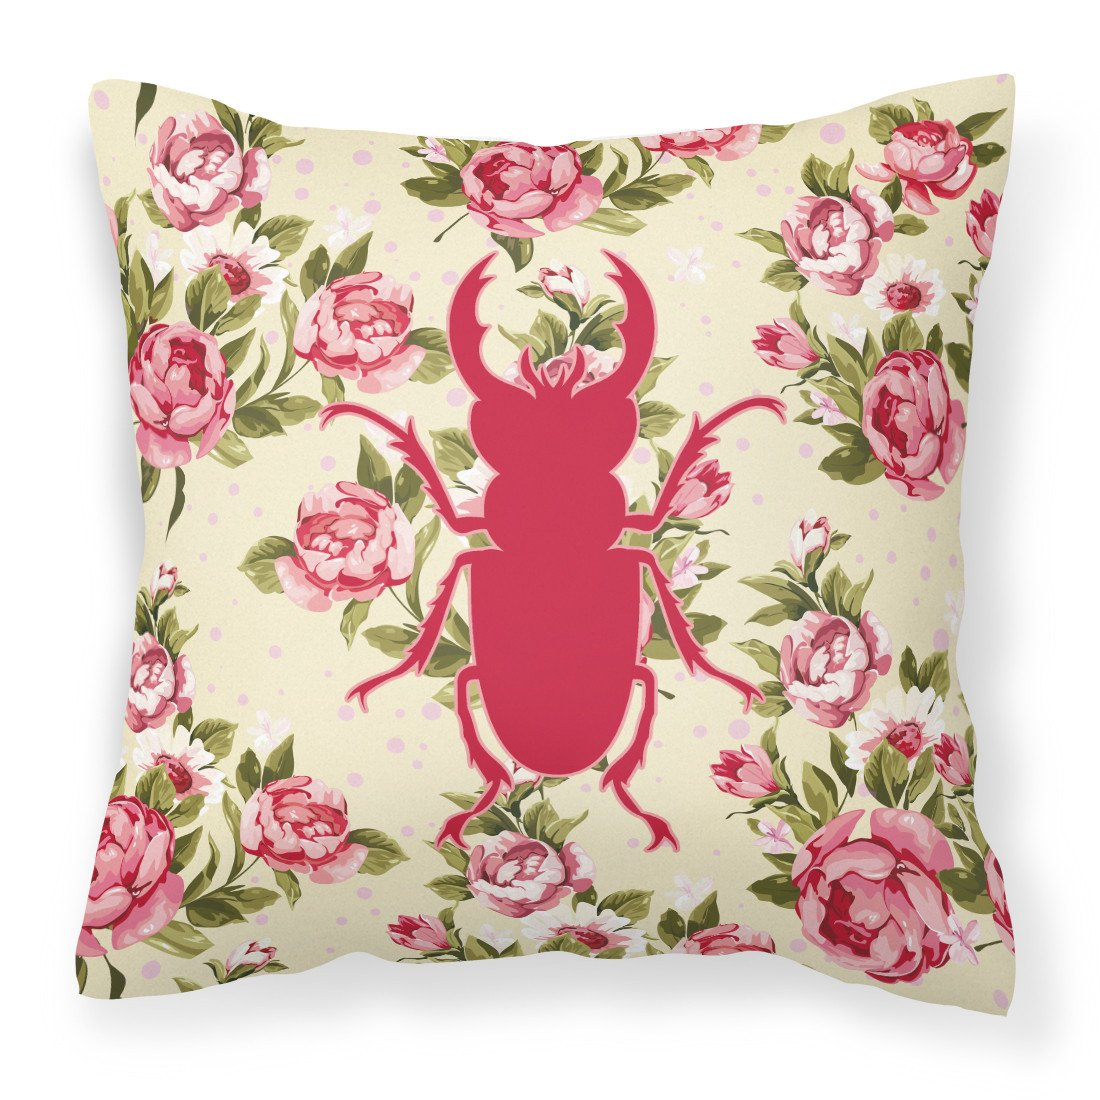 Beetle Shabby Chic Yellow Roses  Fabric Decorative Pillow BB1063-RS-YW-PW1414 - the-store.com